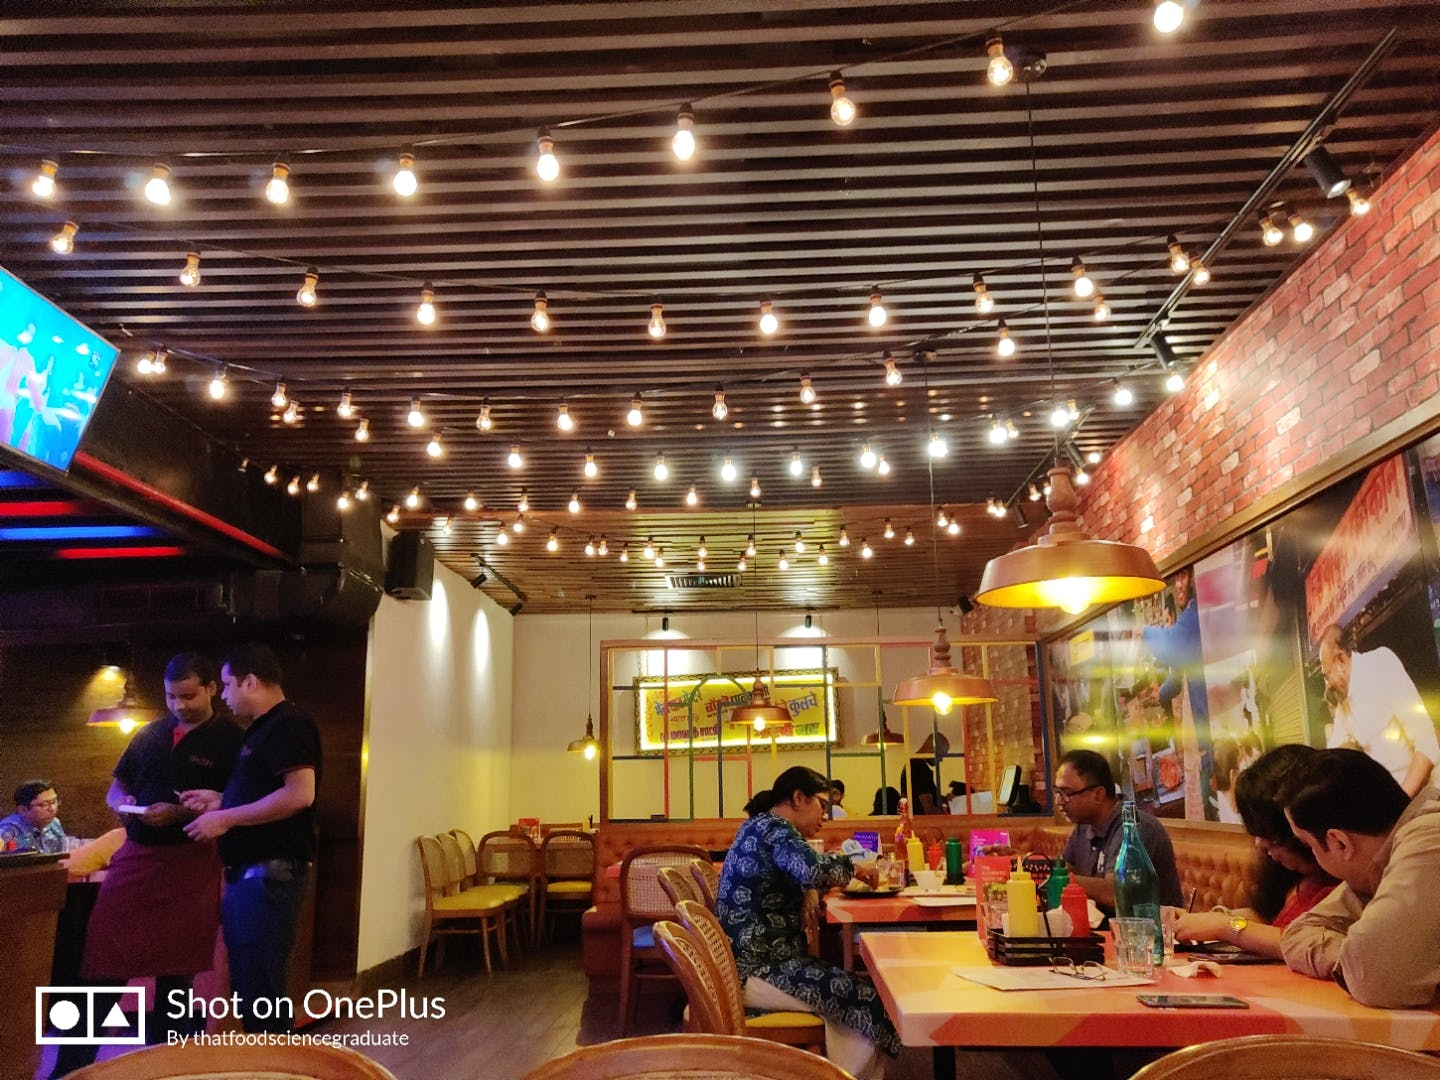 Building,Restaurant,Interior design,Leisure,Food court,Ceiling